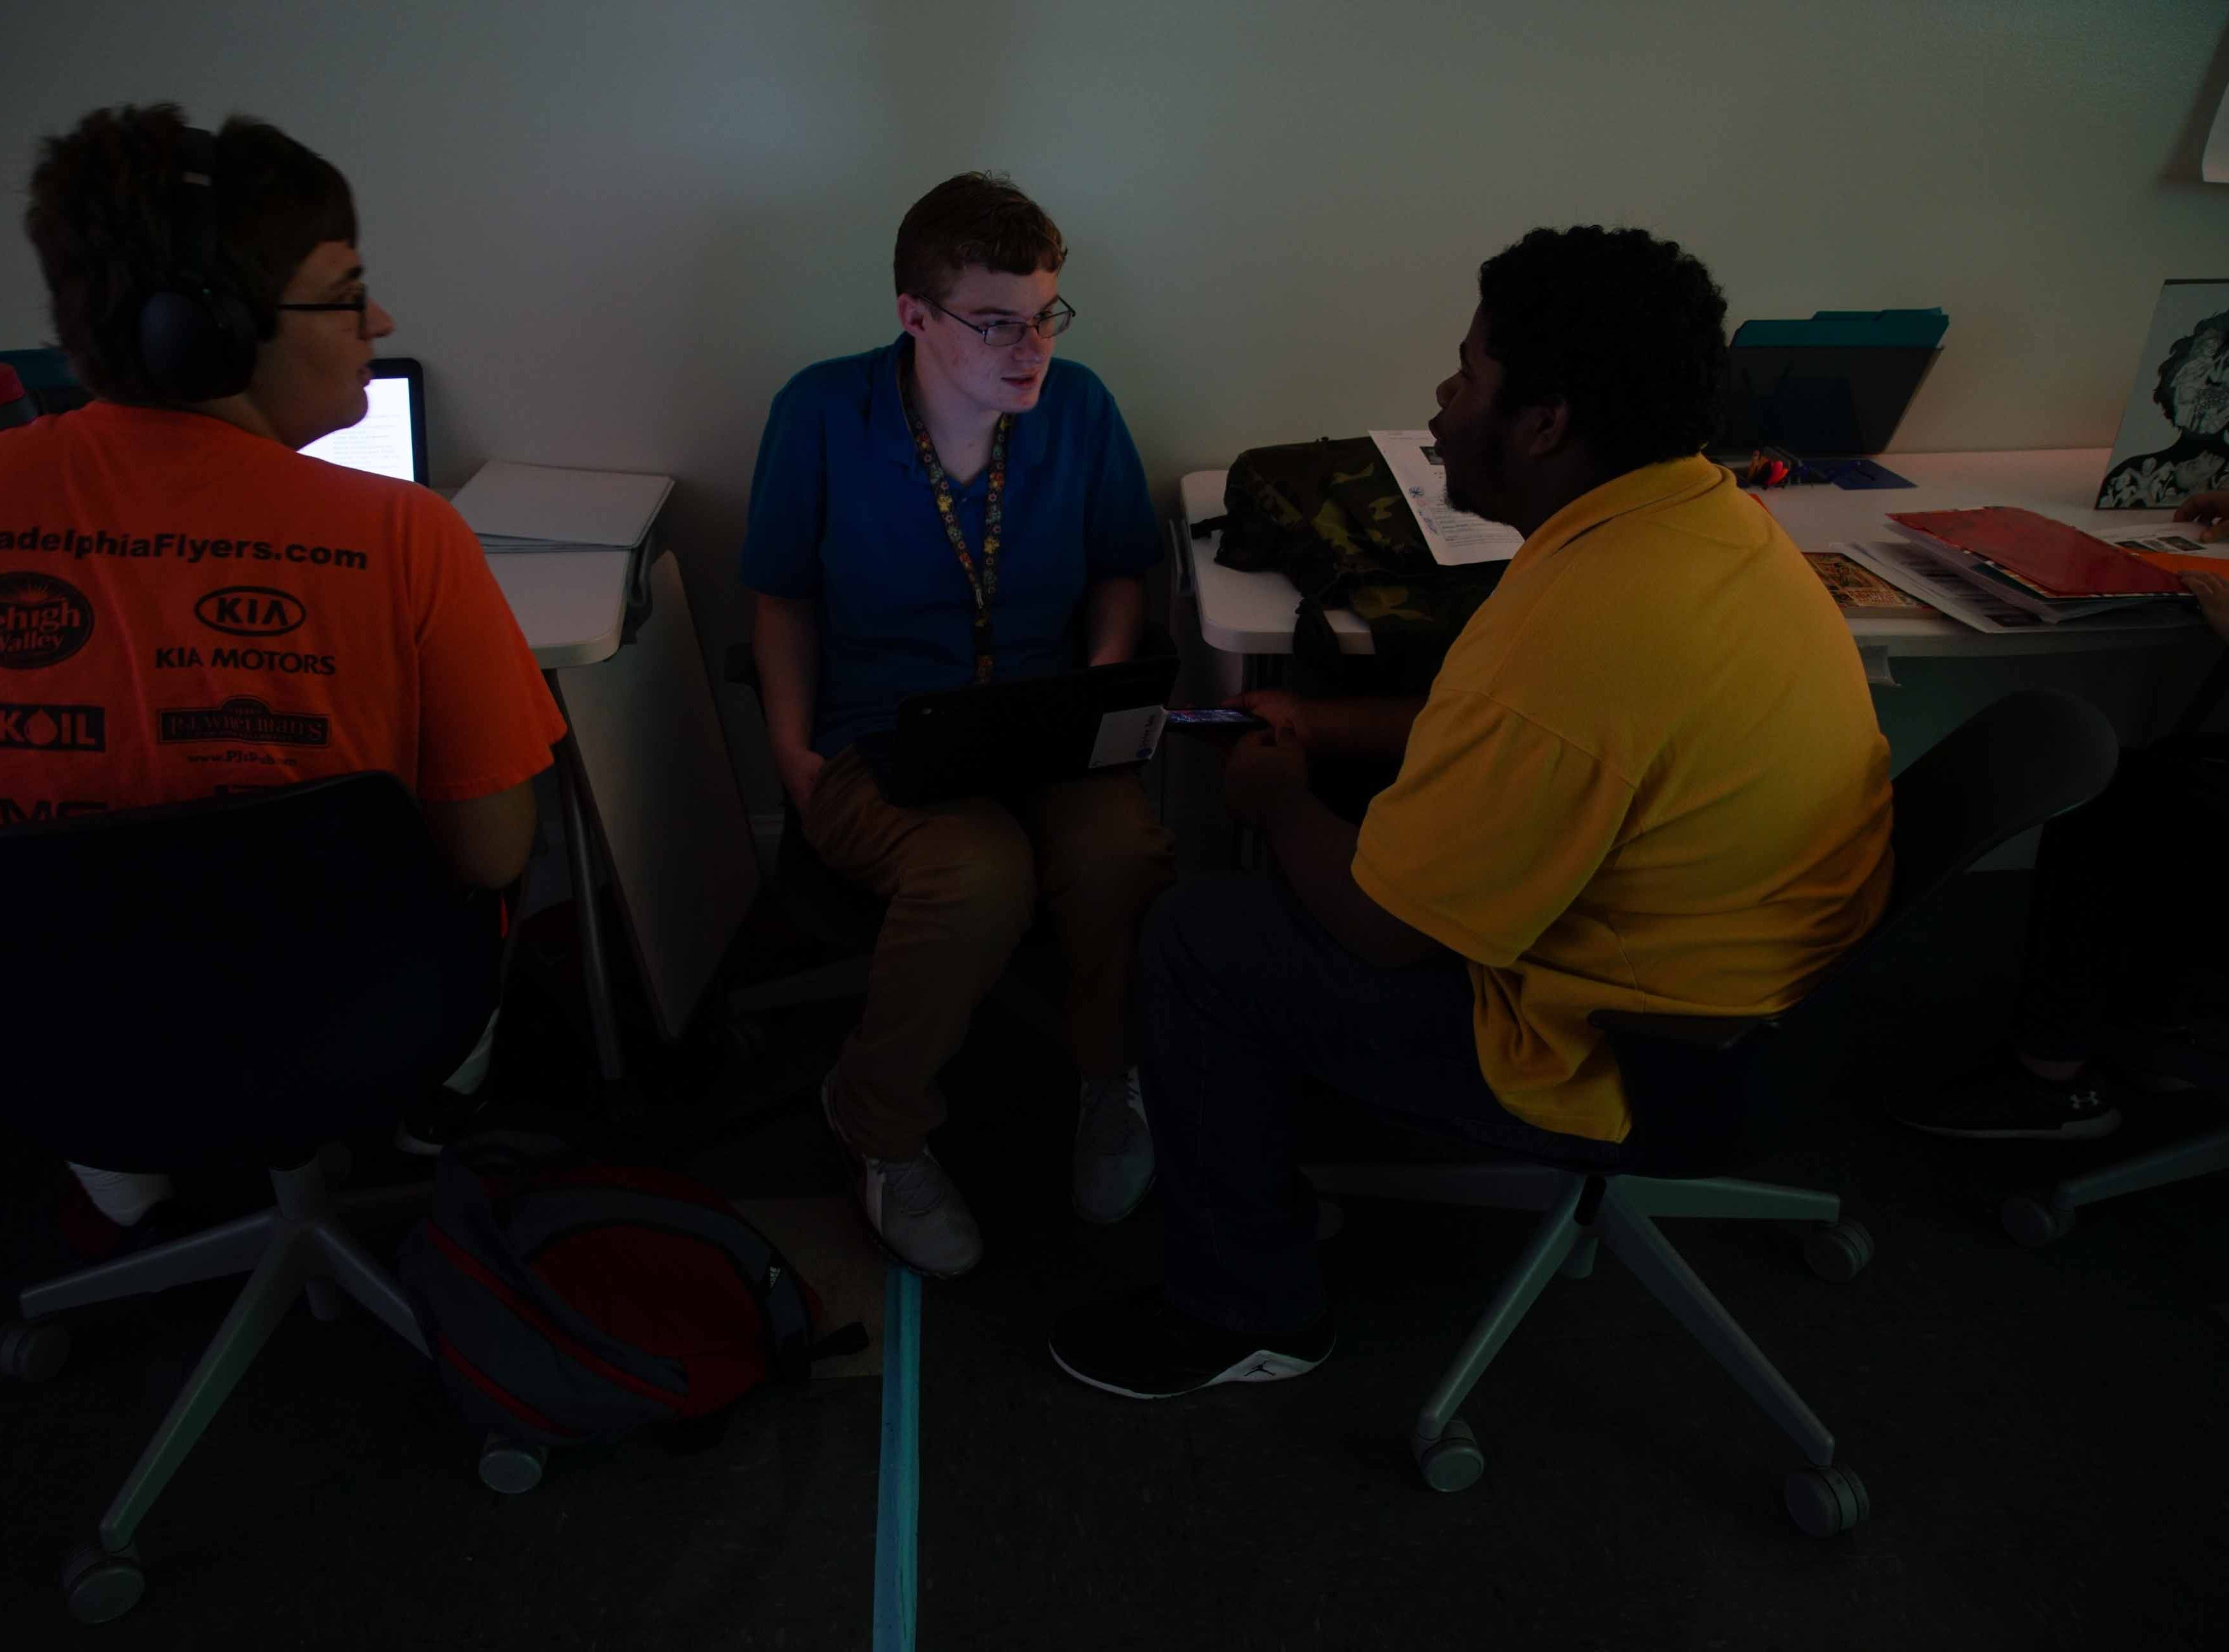 Nick Moore, 17, works with his classmates in his psychology class at the Design Thinking Academy.